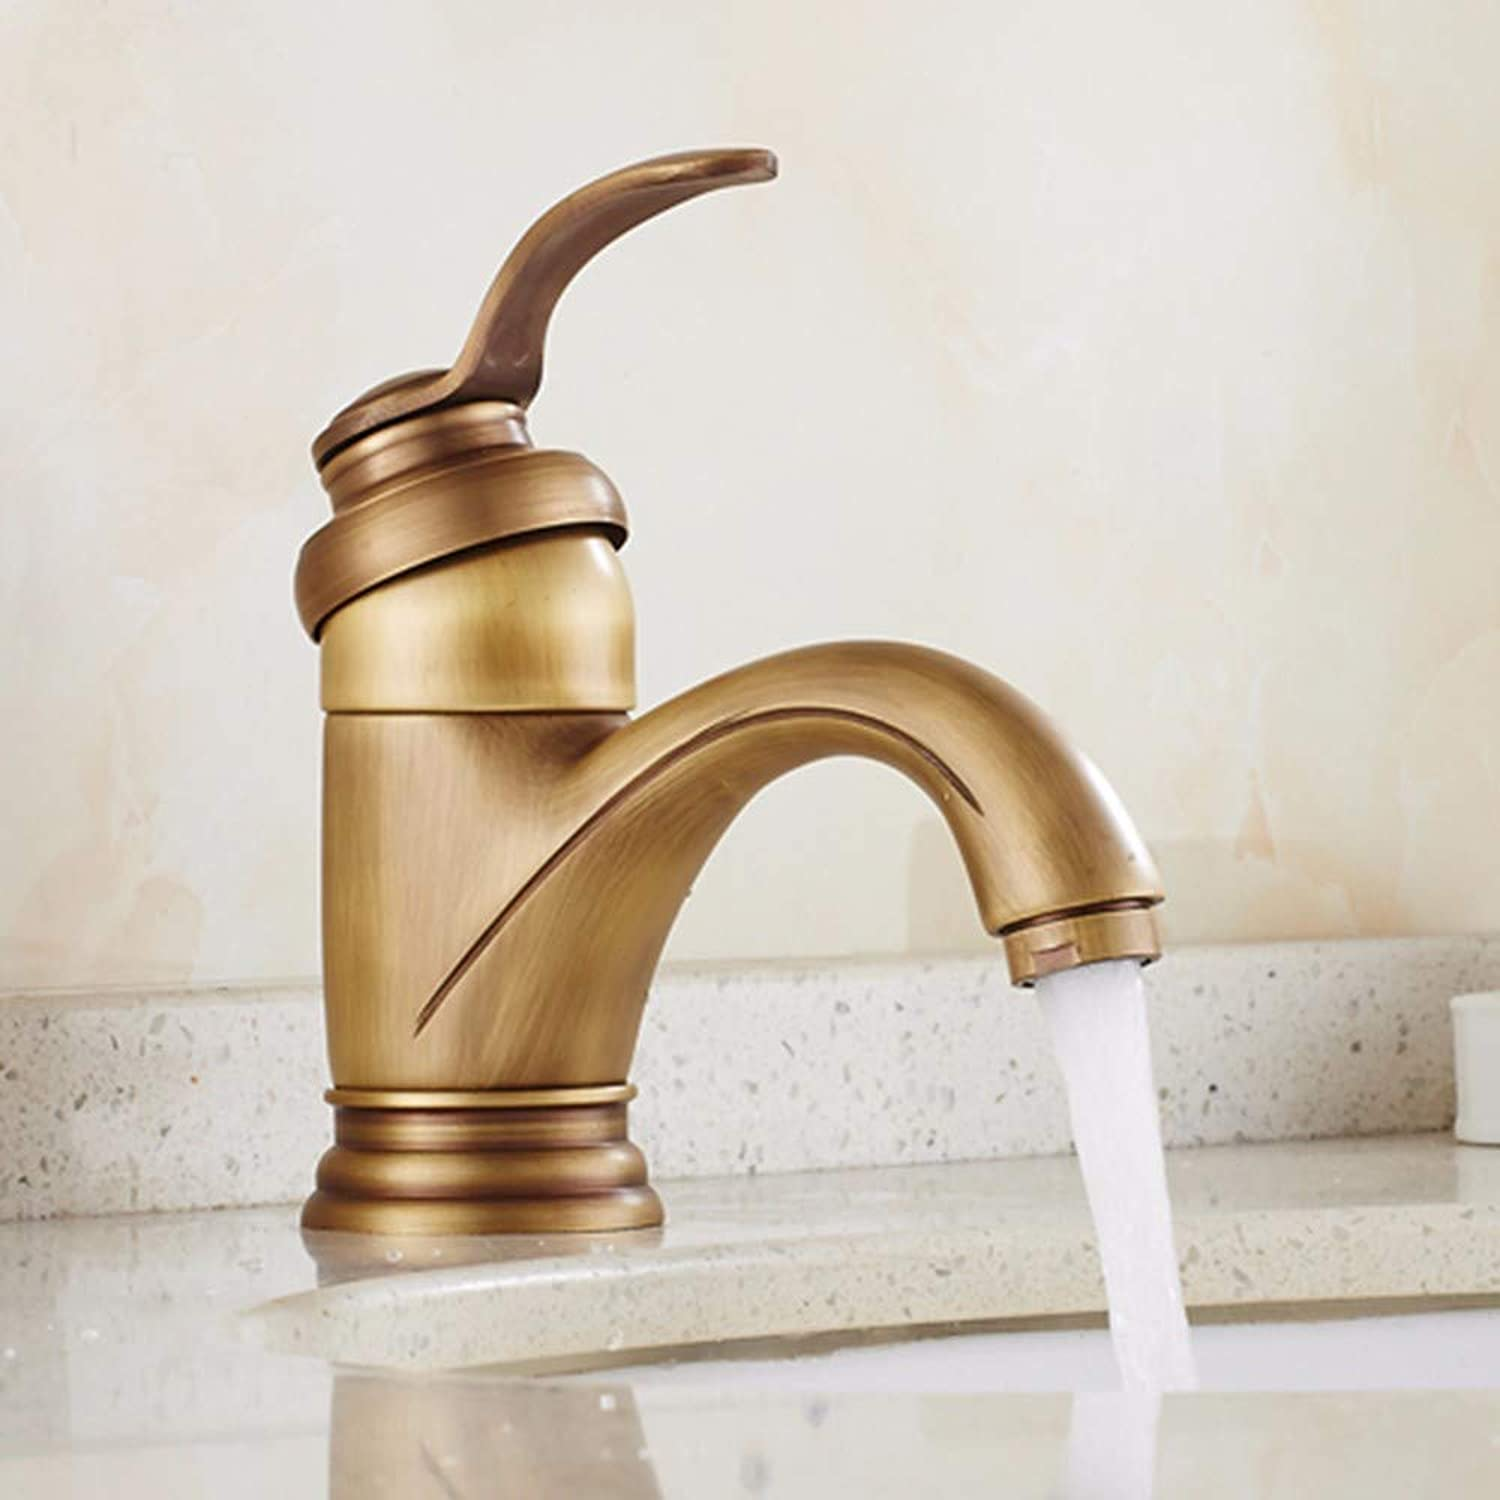 Hlluya Professional Sink Mixer Tap Kitchen Faucet Copper, brushed, hot and cold, the basin, sink and faucet